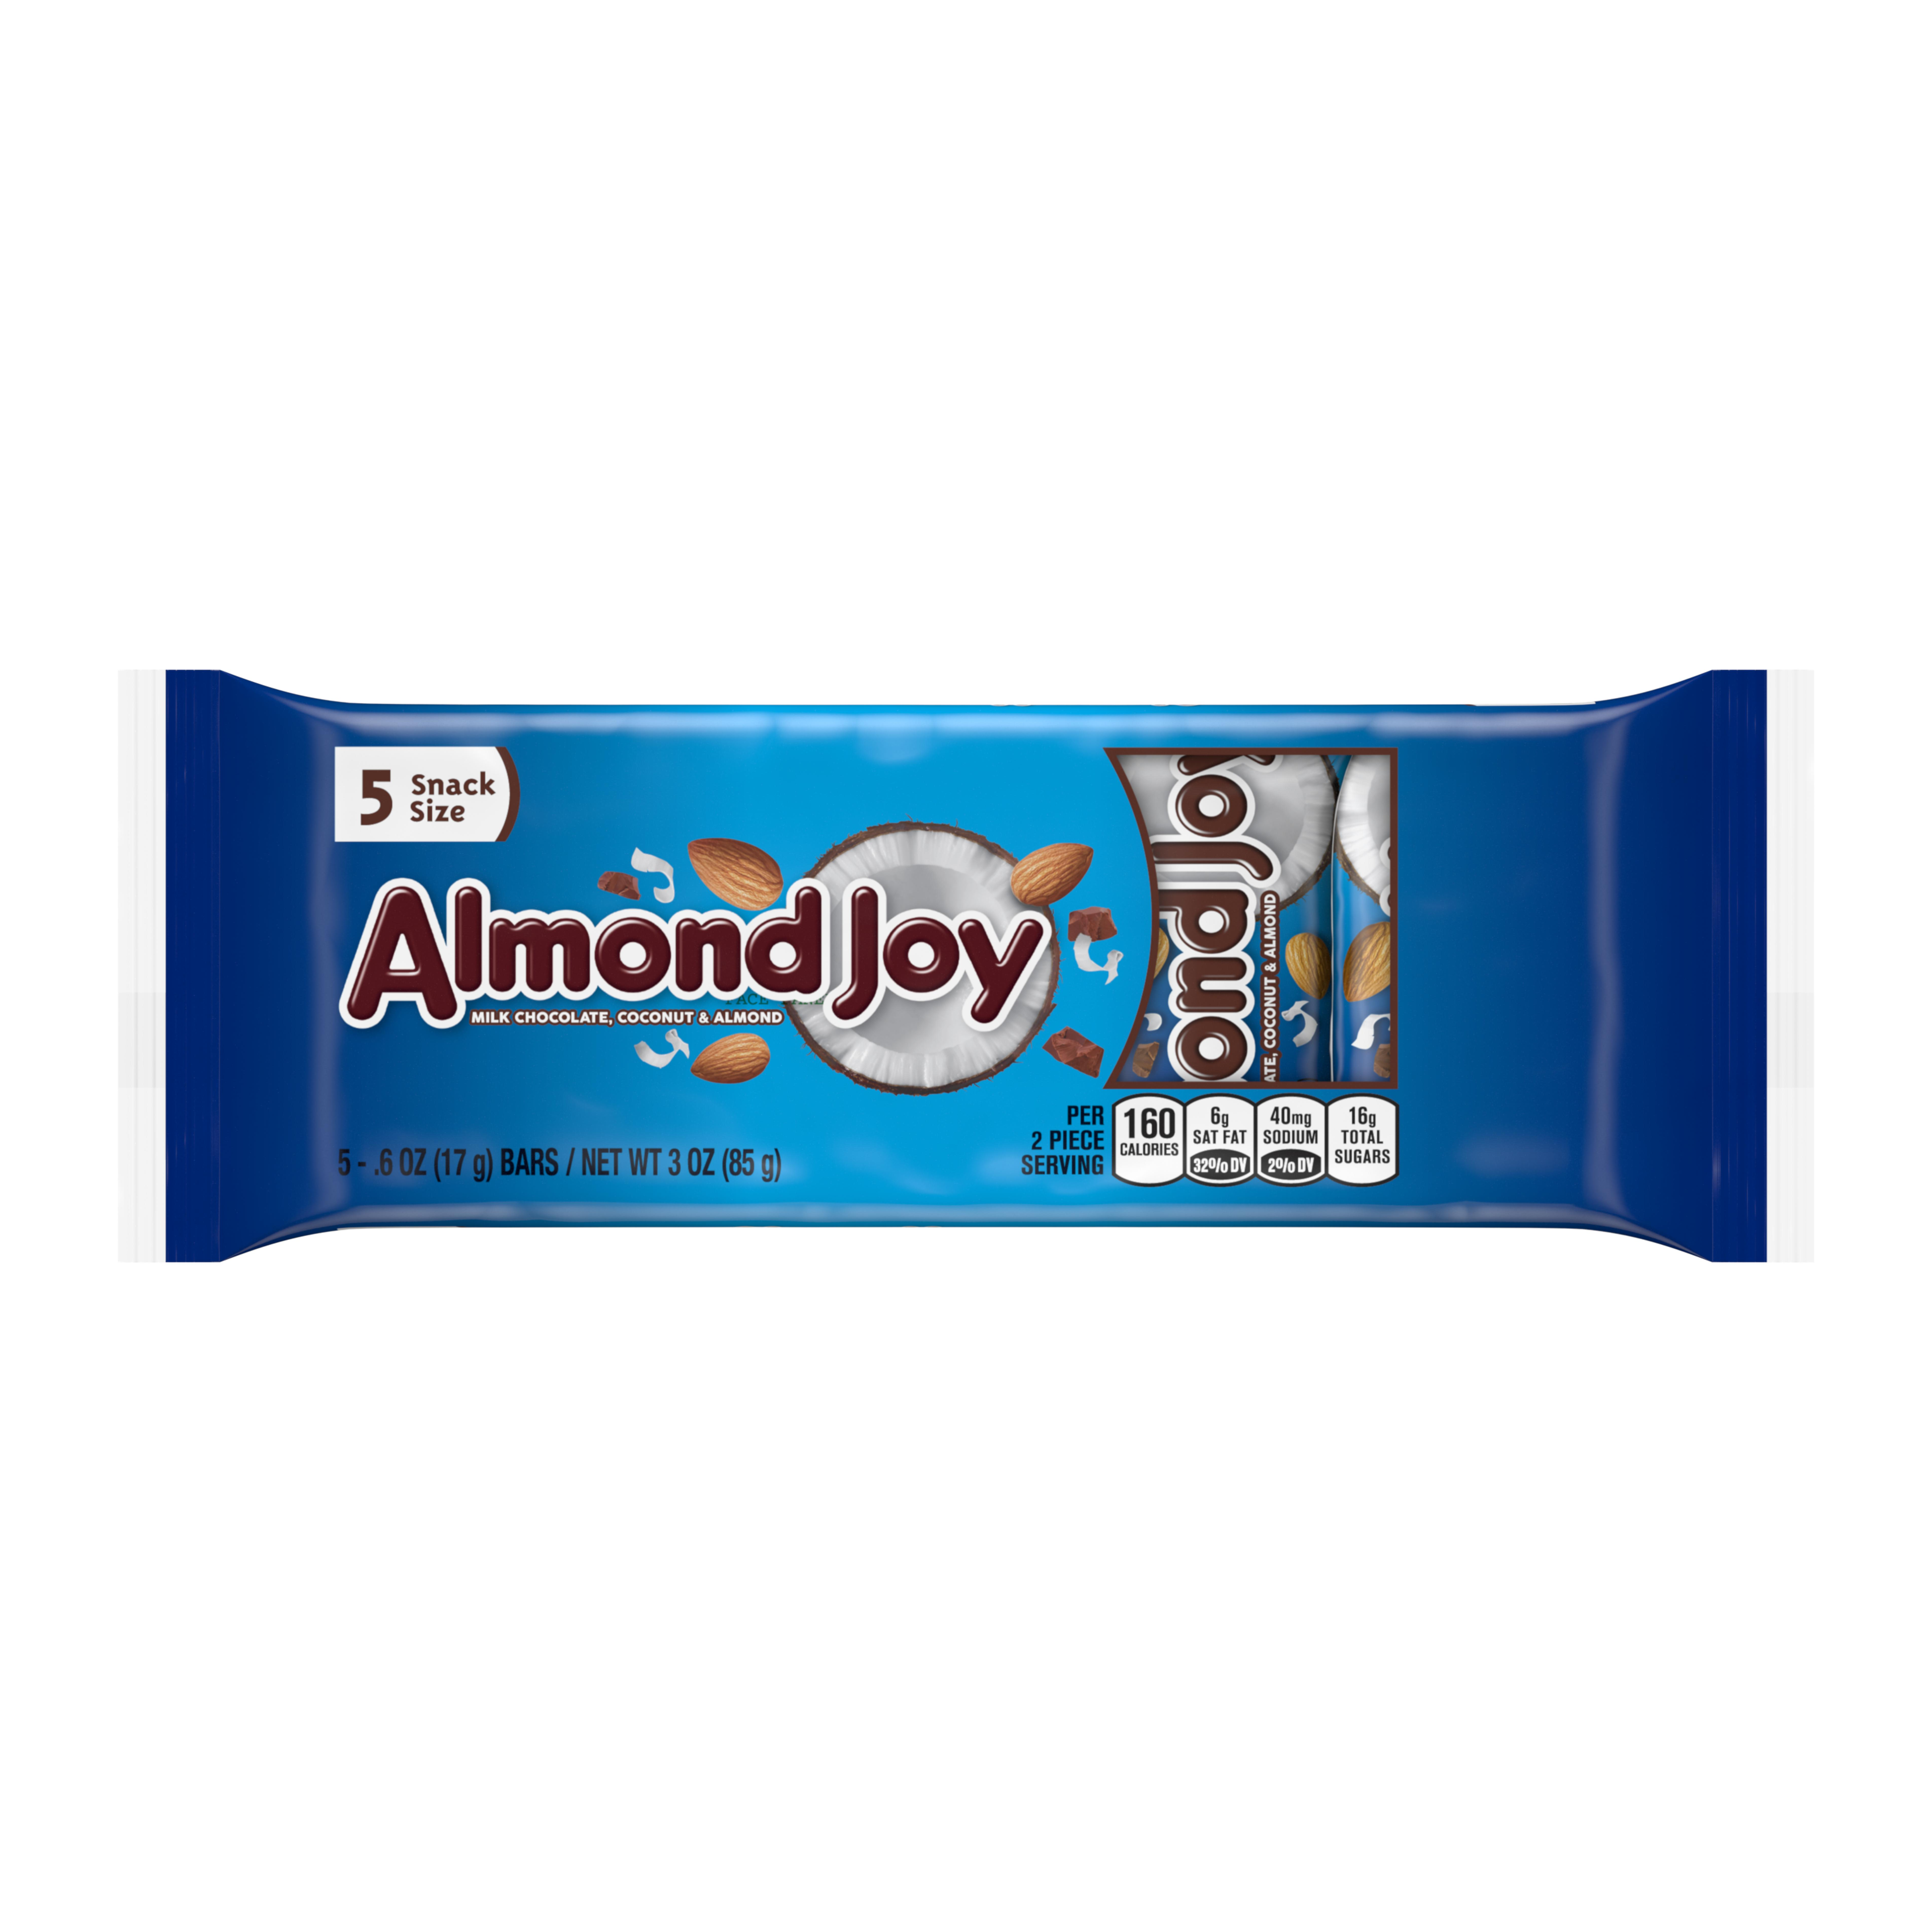 Almond Joy, Milk Chocolate Coconut & Almond Candy Snack Size, 3 Oz, 5 ct